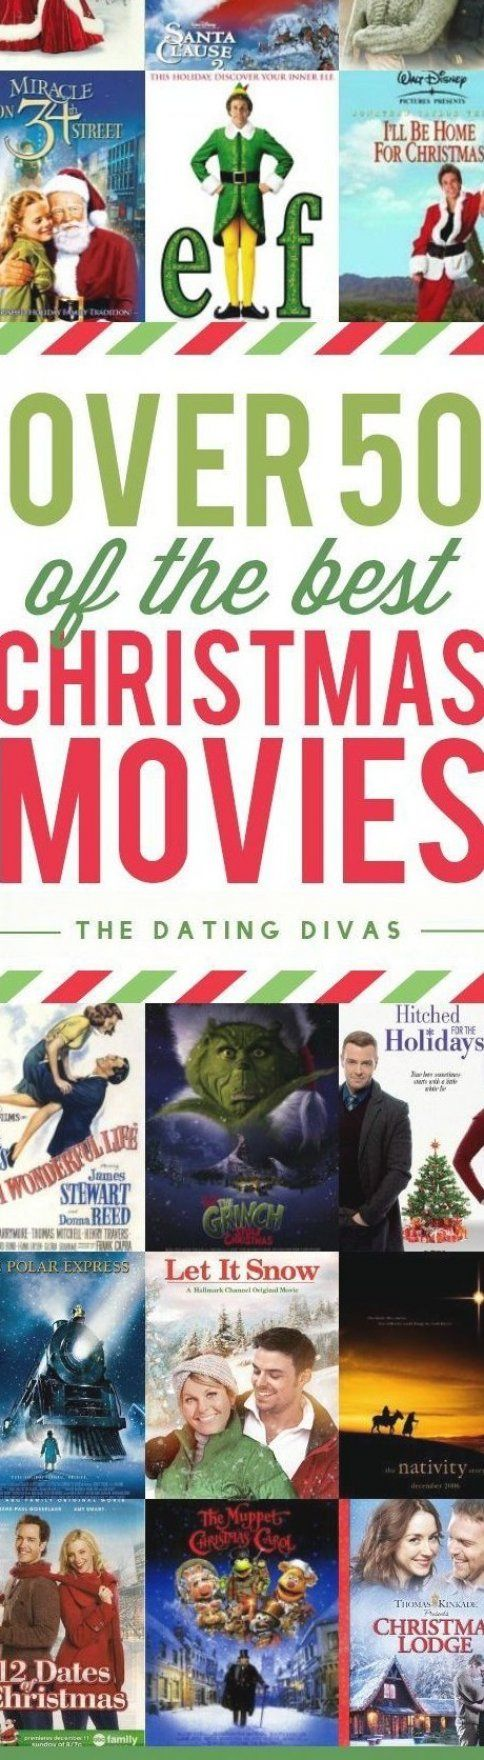 50 of the best Christmas and Holiday Movies all in one place  These are family-friendly films that are perfect for the holiday season  I think it s time for a Christmas Movie Marathon - who s with me  #christmasmovies #holidaymovies